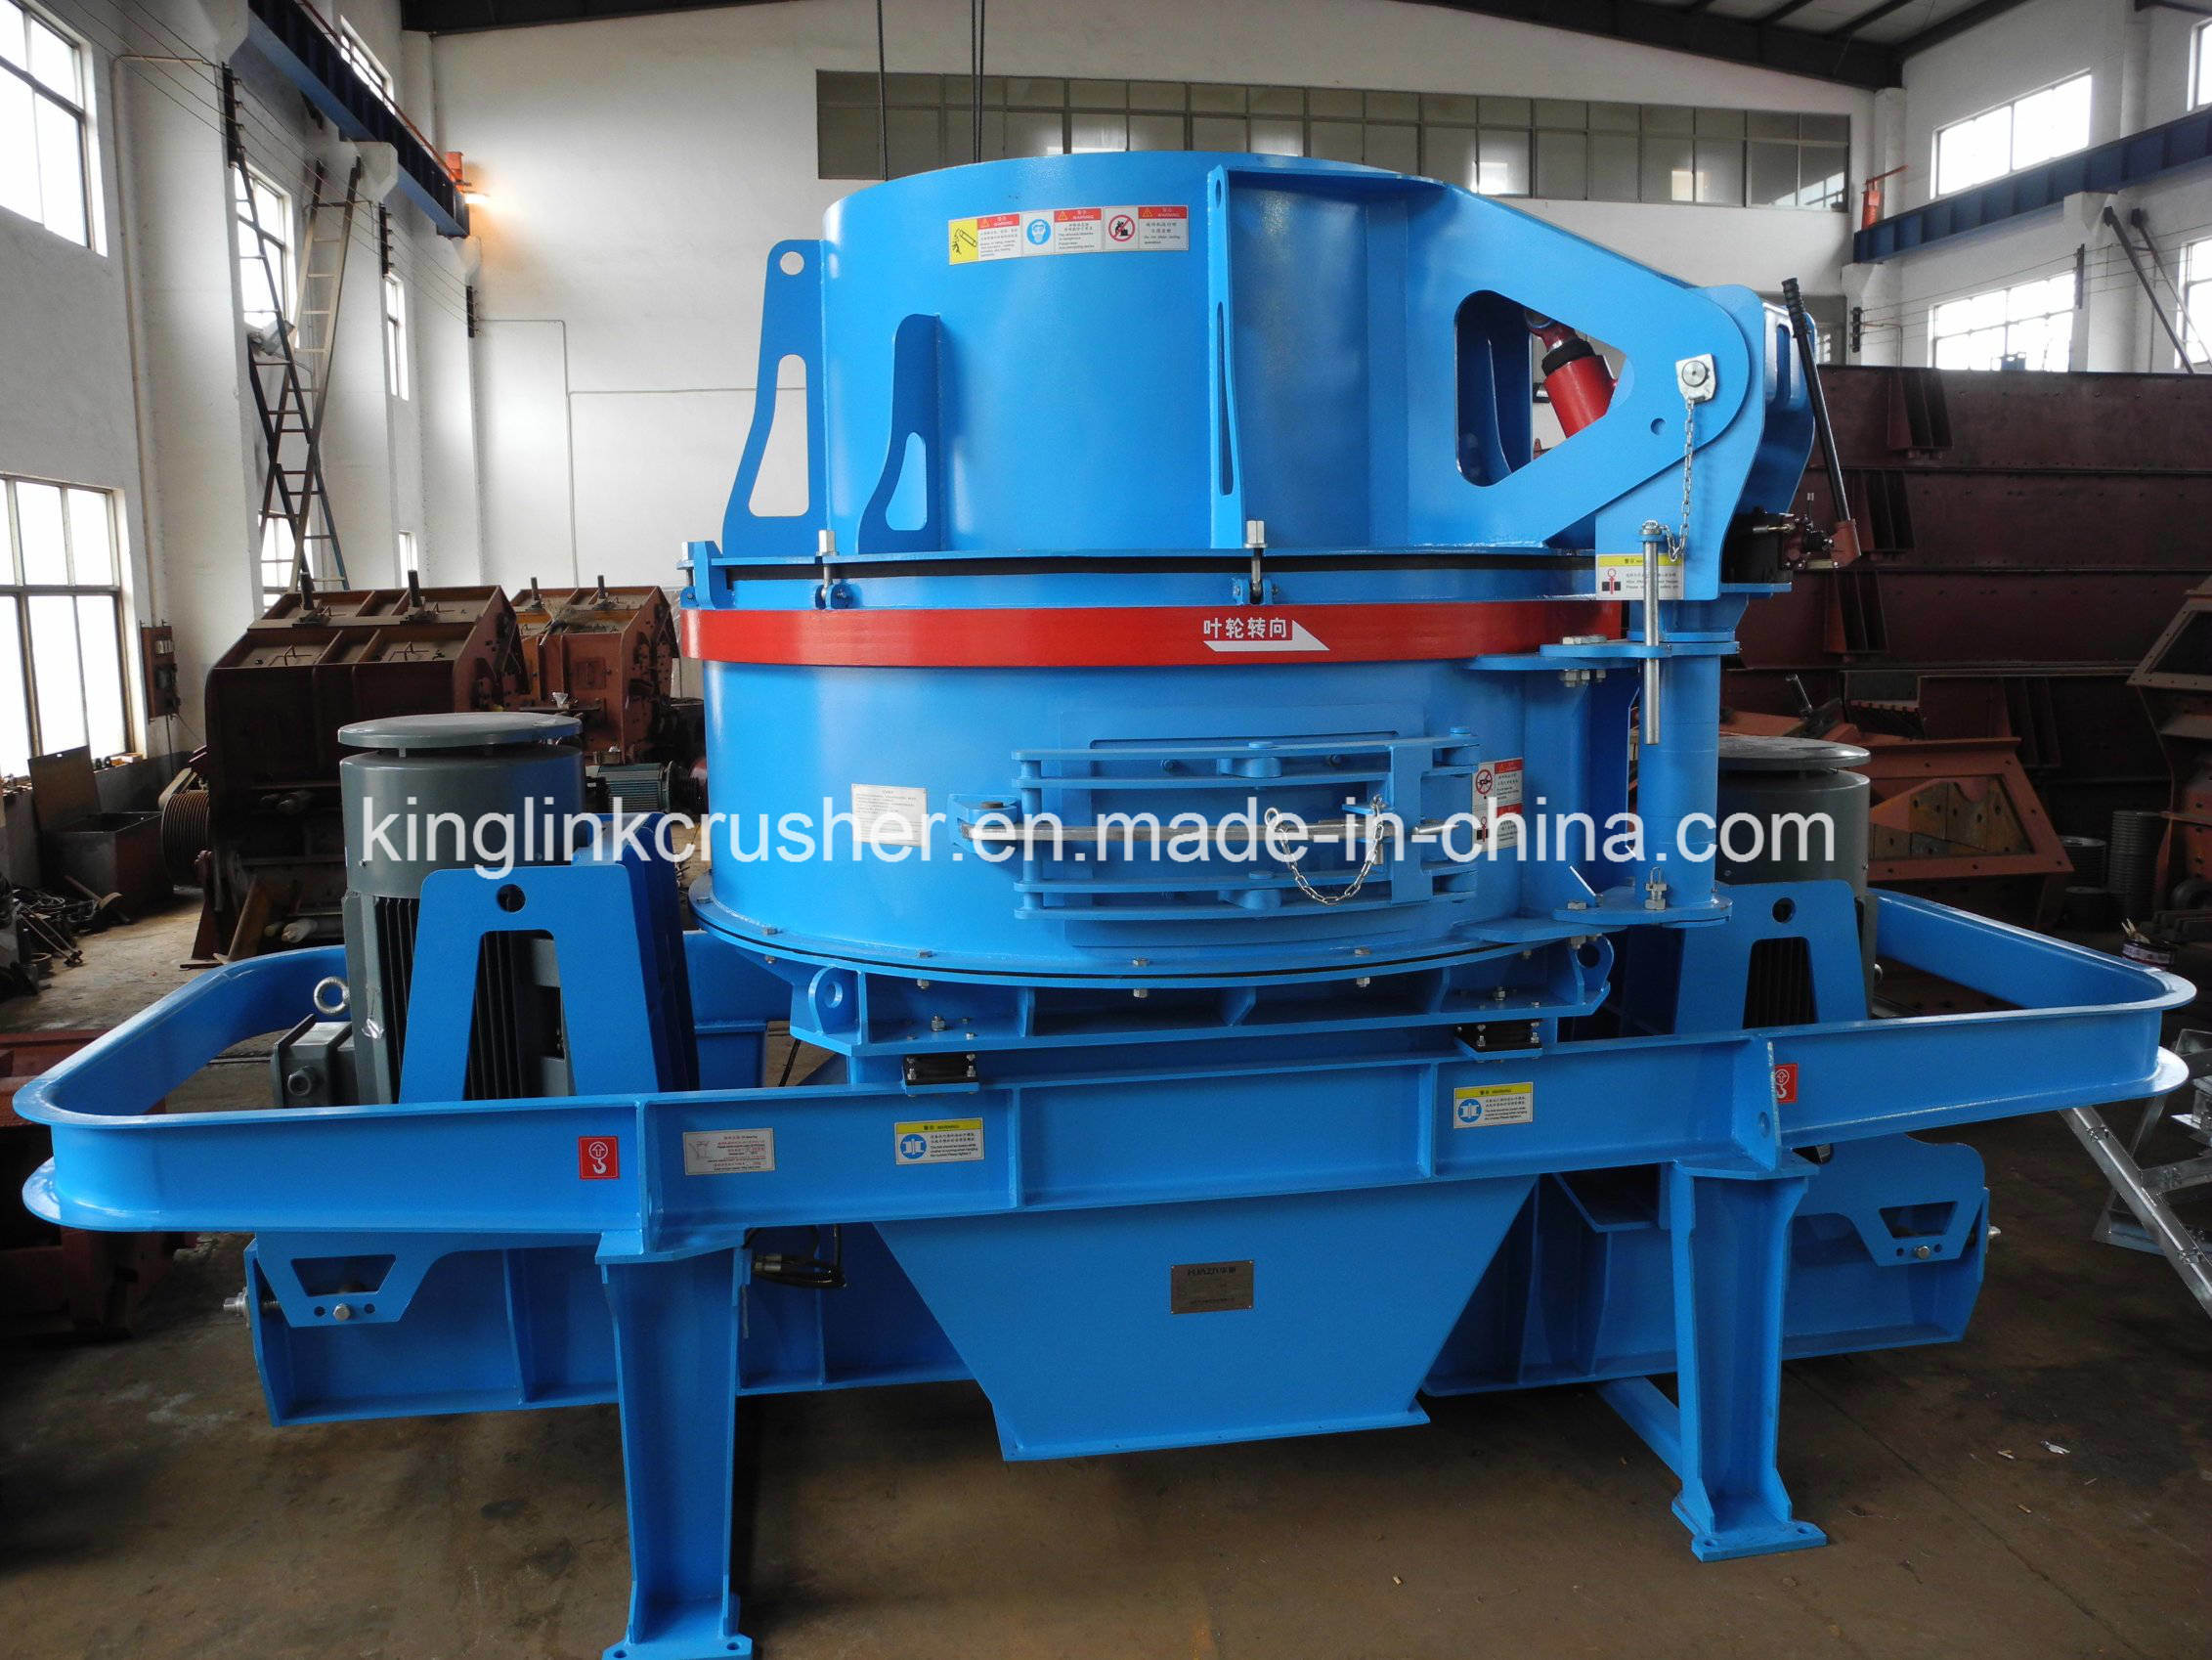 Sand Making Machine of VSI Crusher